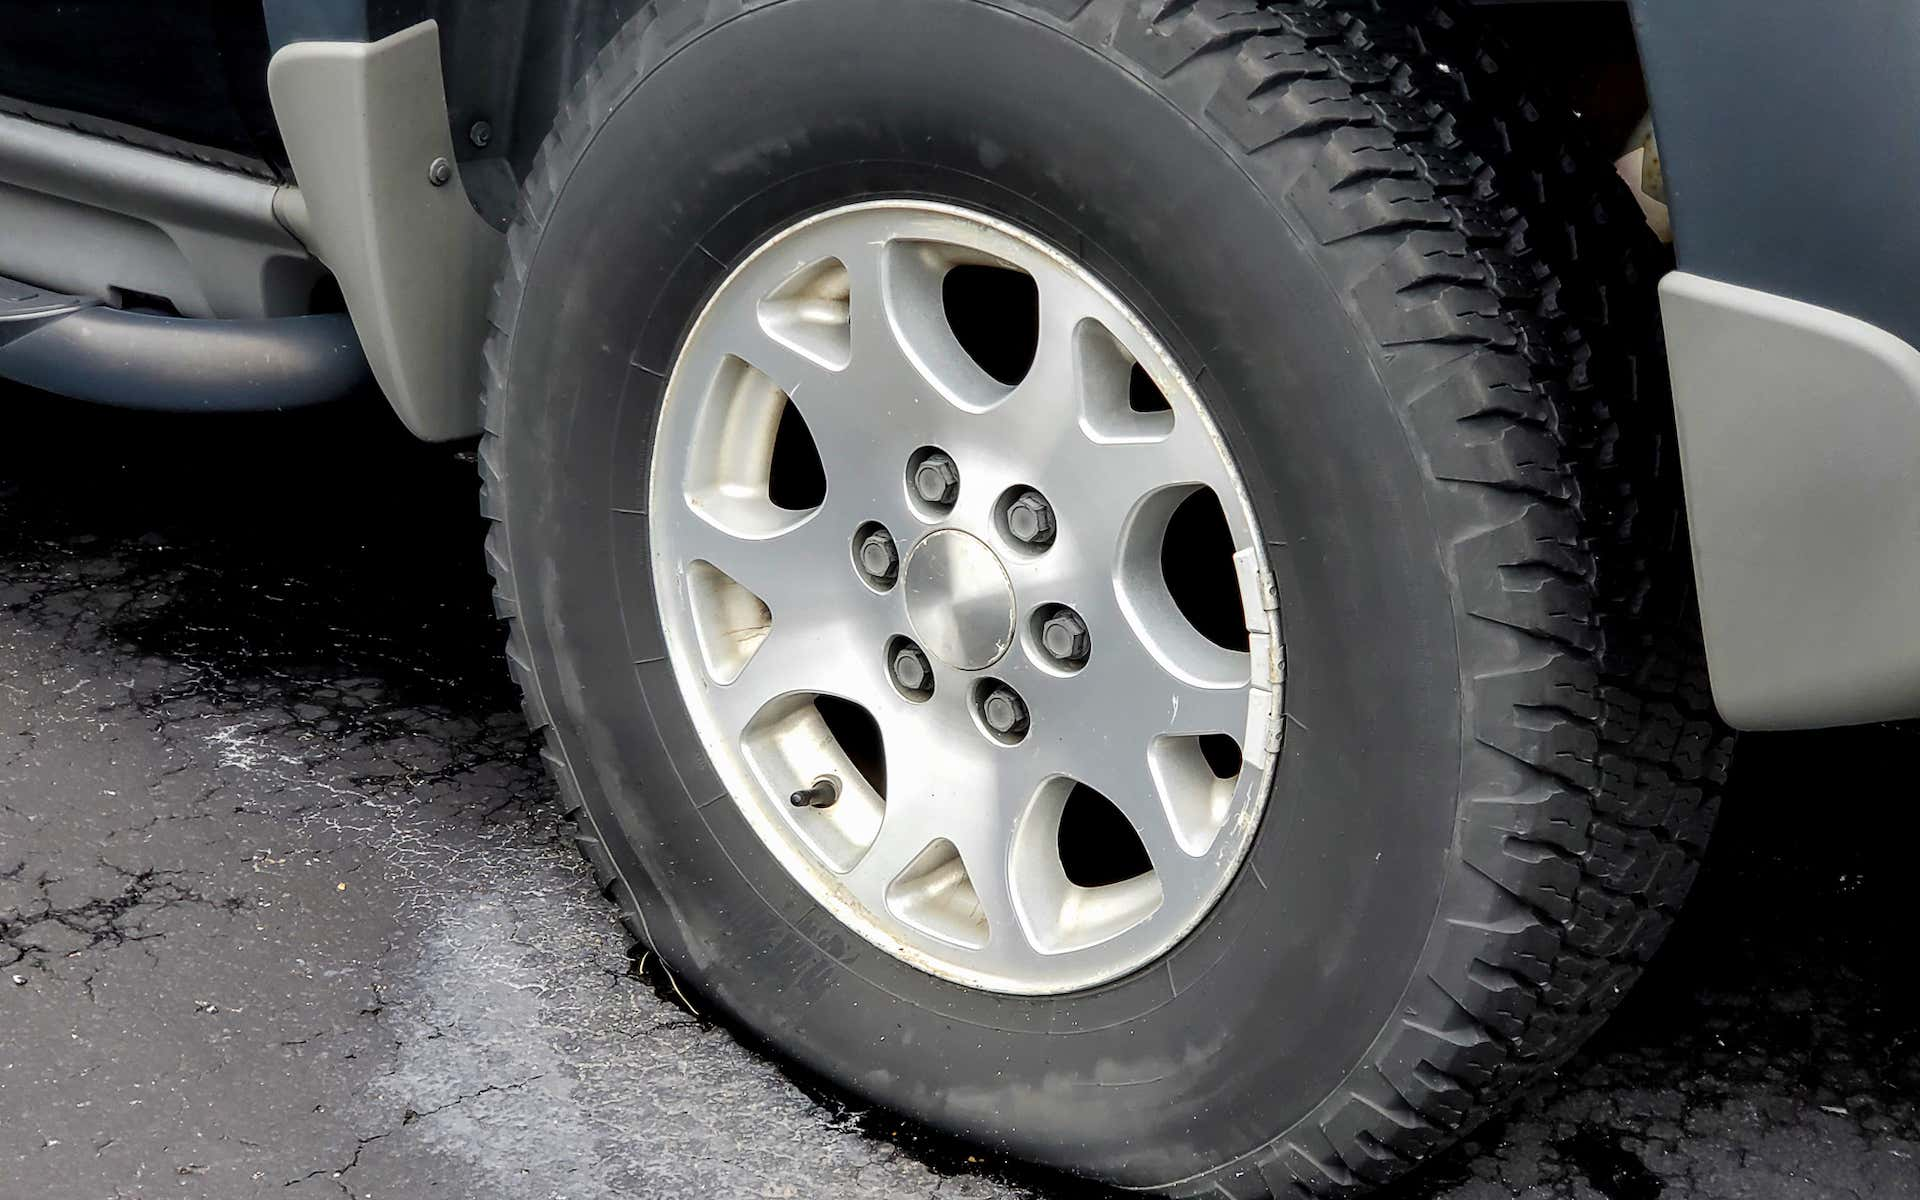 Tires might be part of your problem.